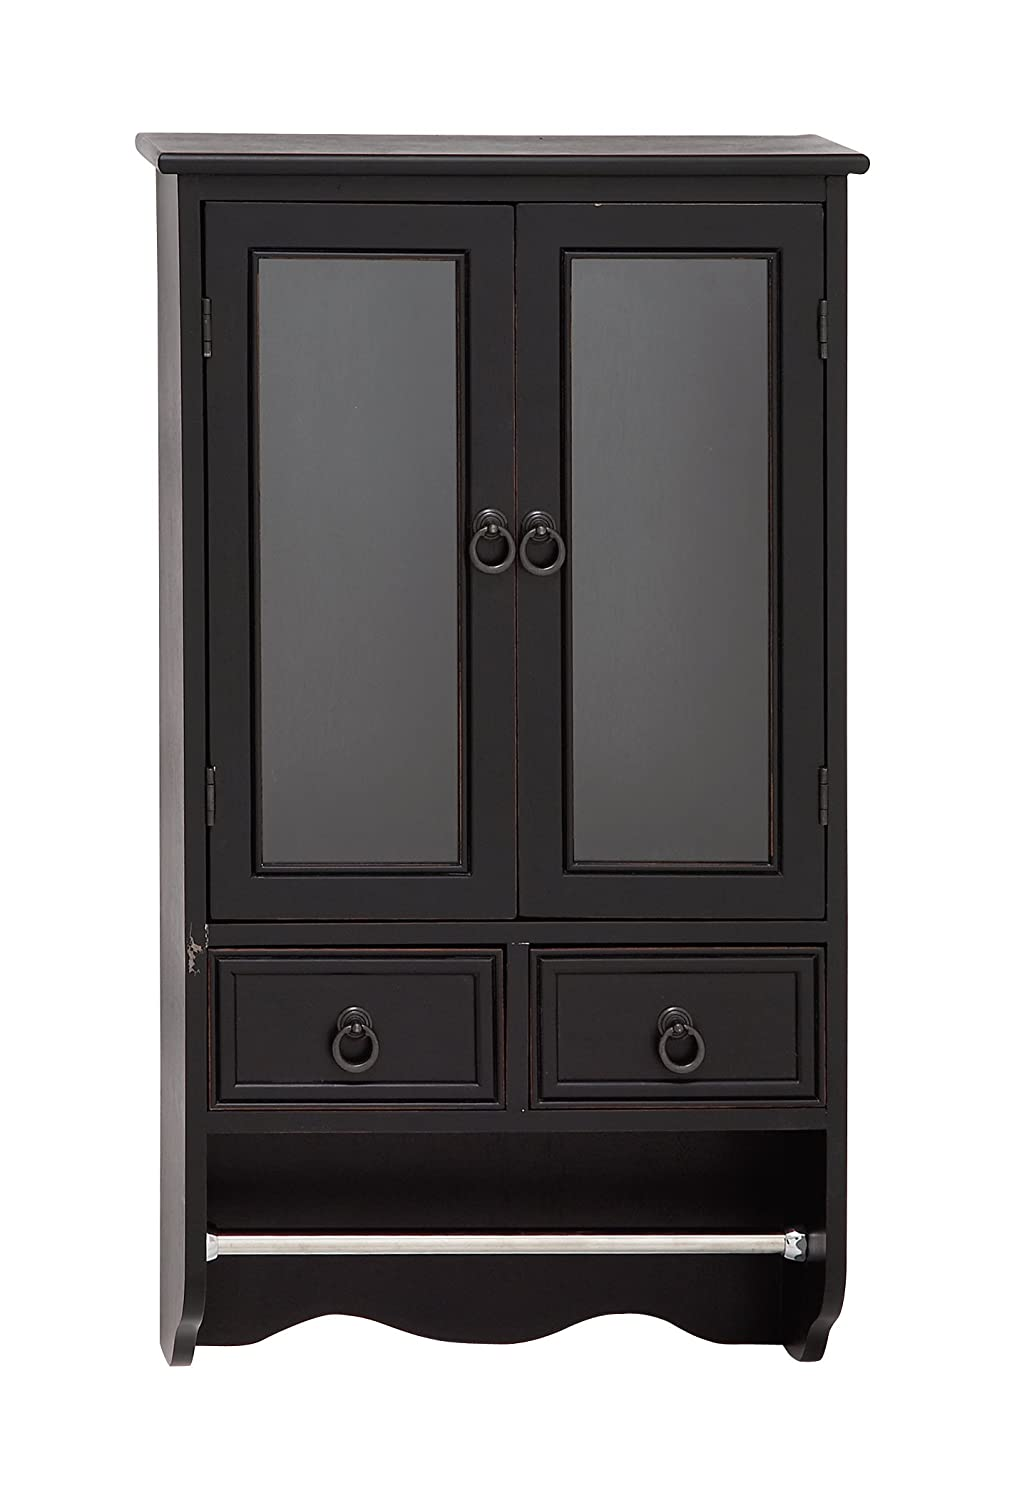 Benzara 96321 The Attractive Wood Glass Wall Cabinet